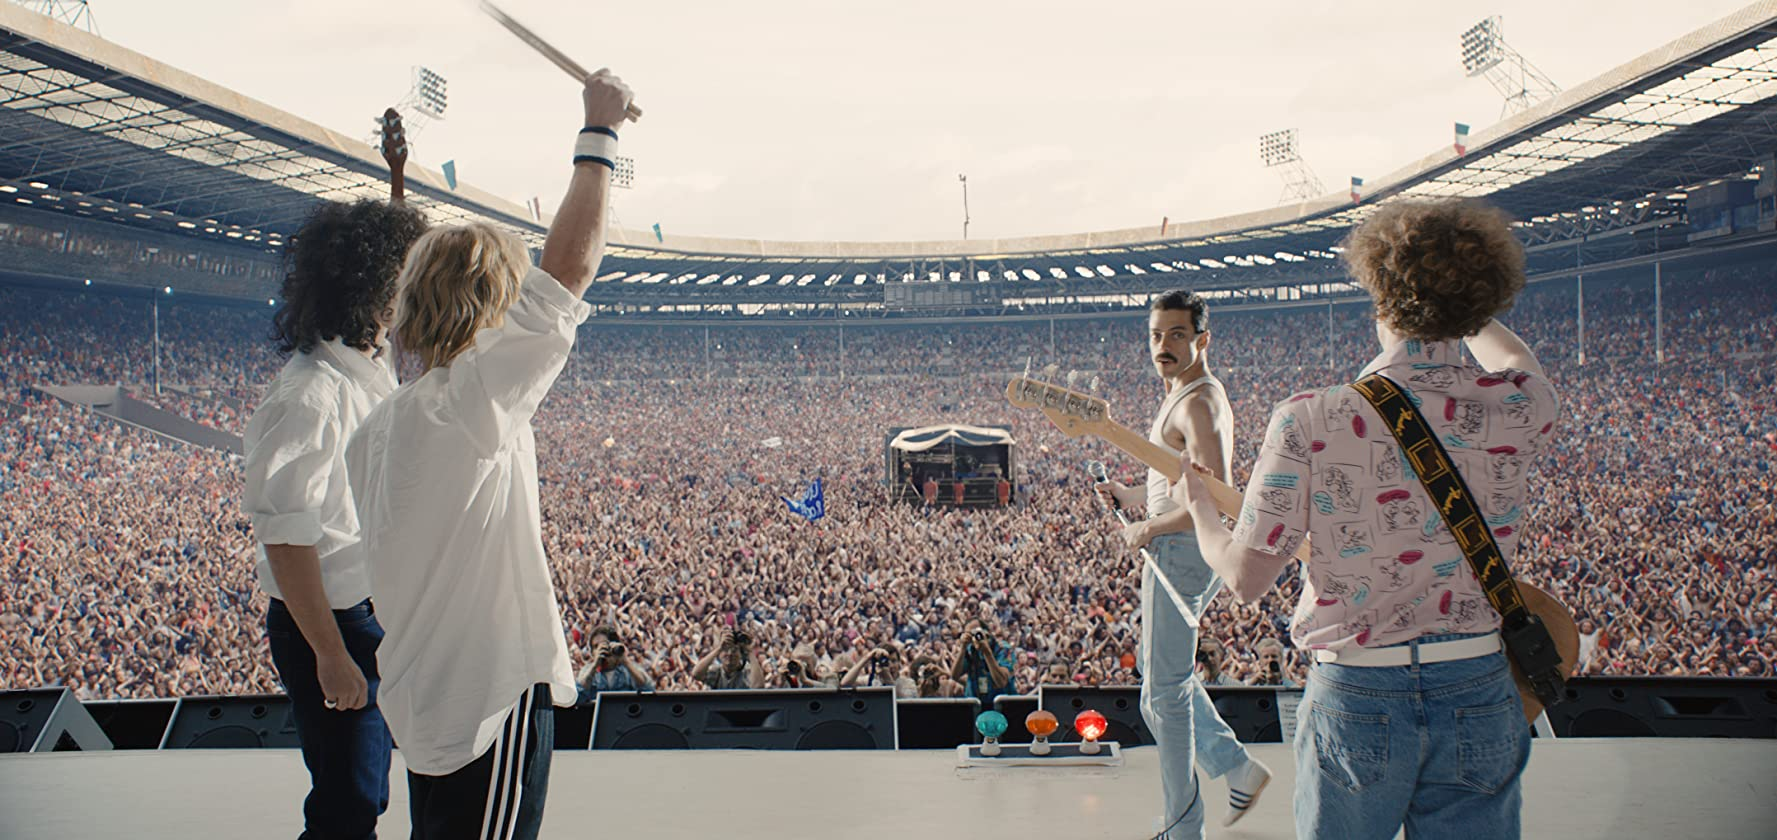 Joseph Mazzello, Rami Malek, Gwilym Lee, and Ben Hardy in Bohemian Rhapsody (2018)